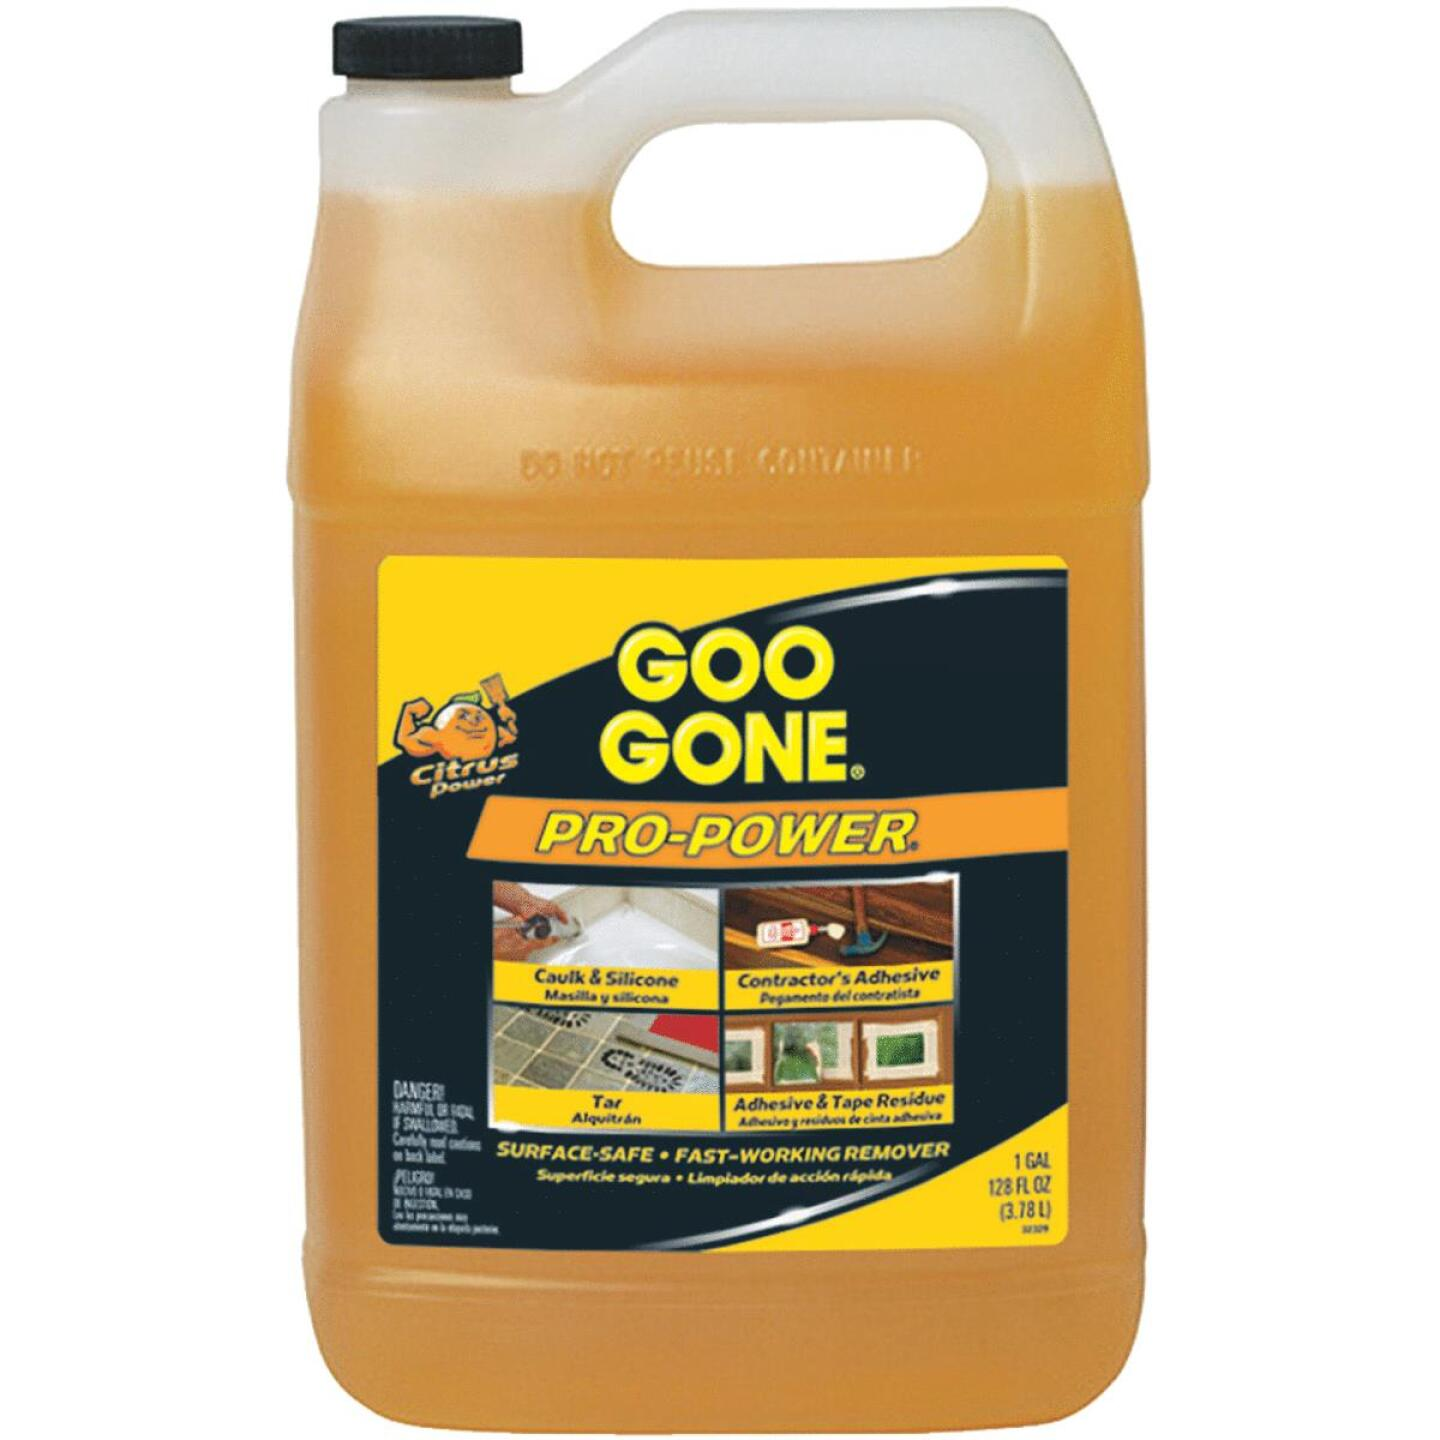 Goo Gone 1 Gal. Pro-Power Adhesive Remover Image 168